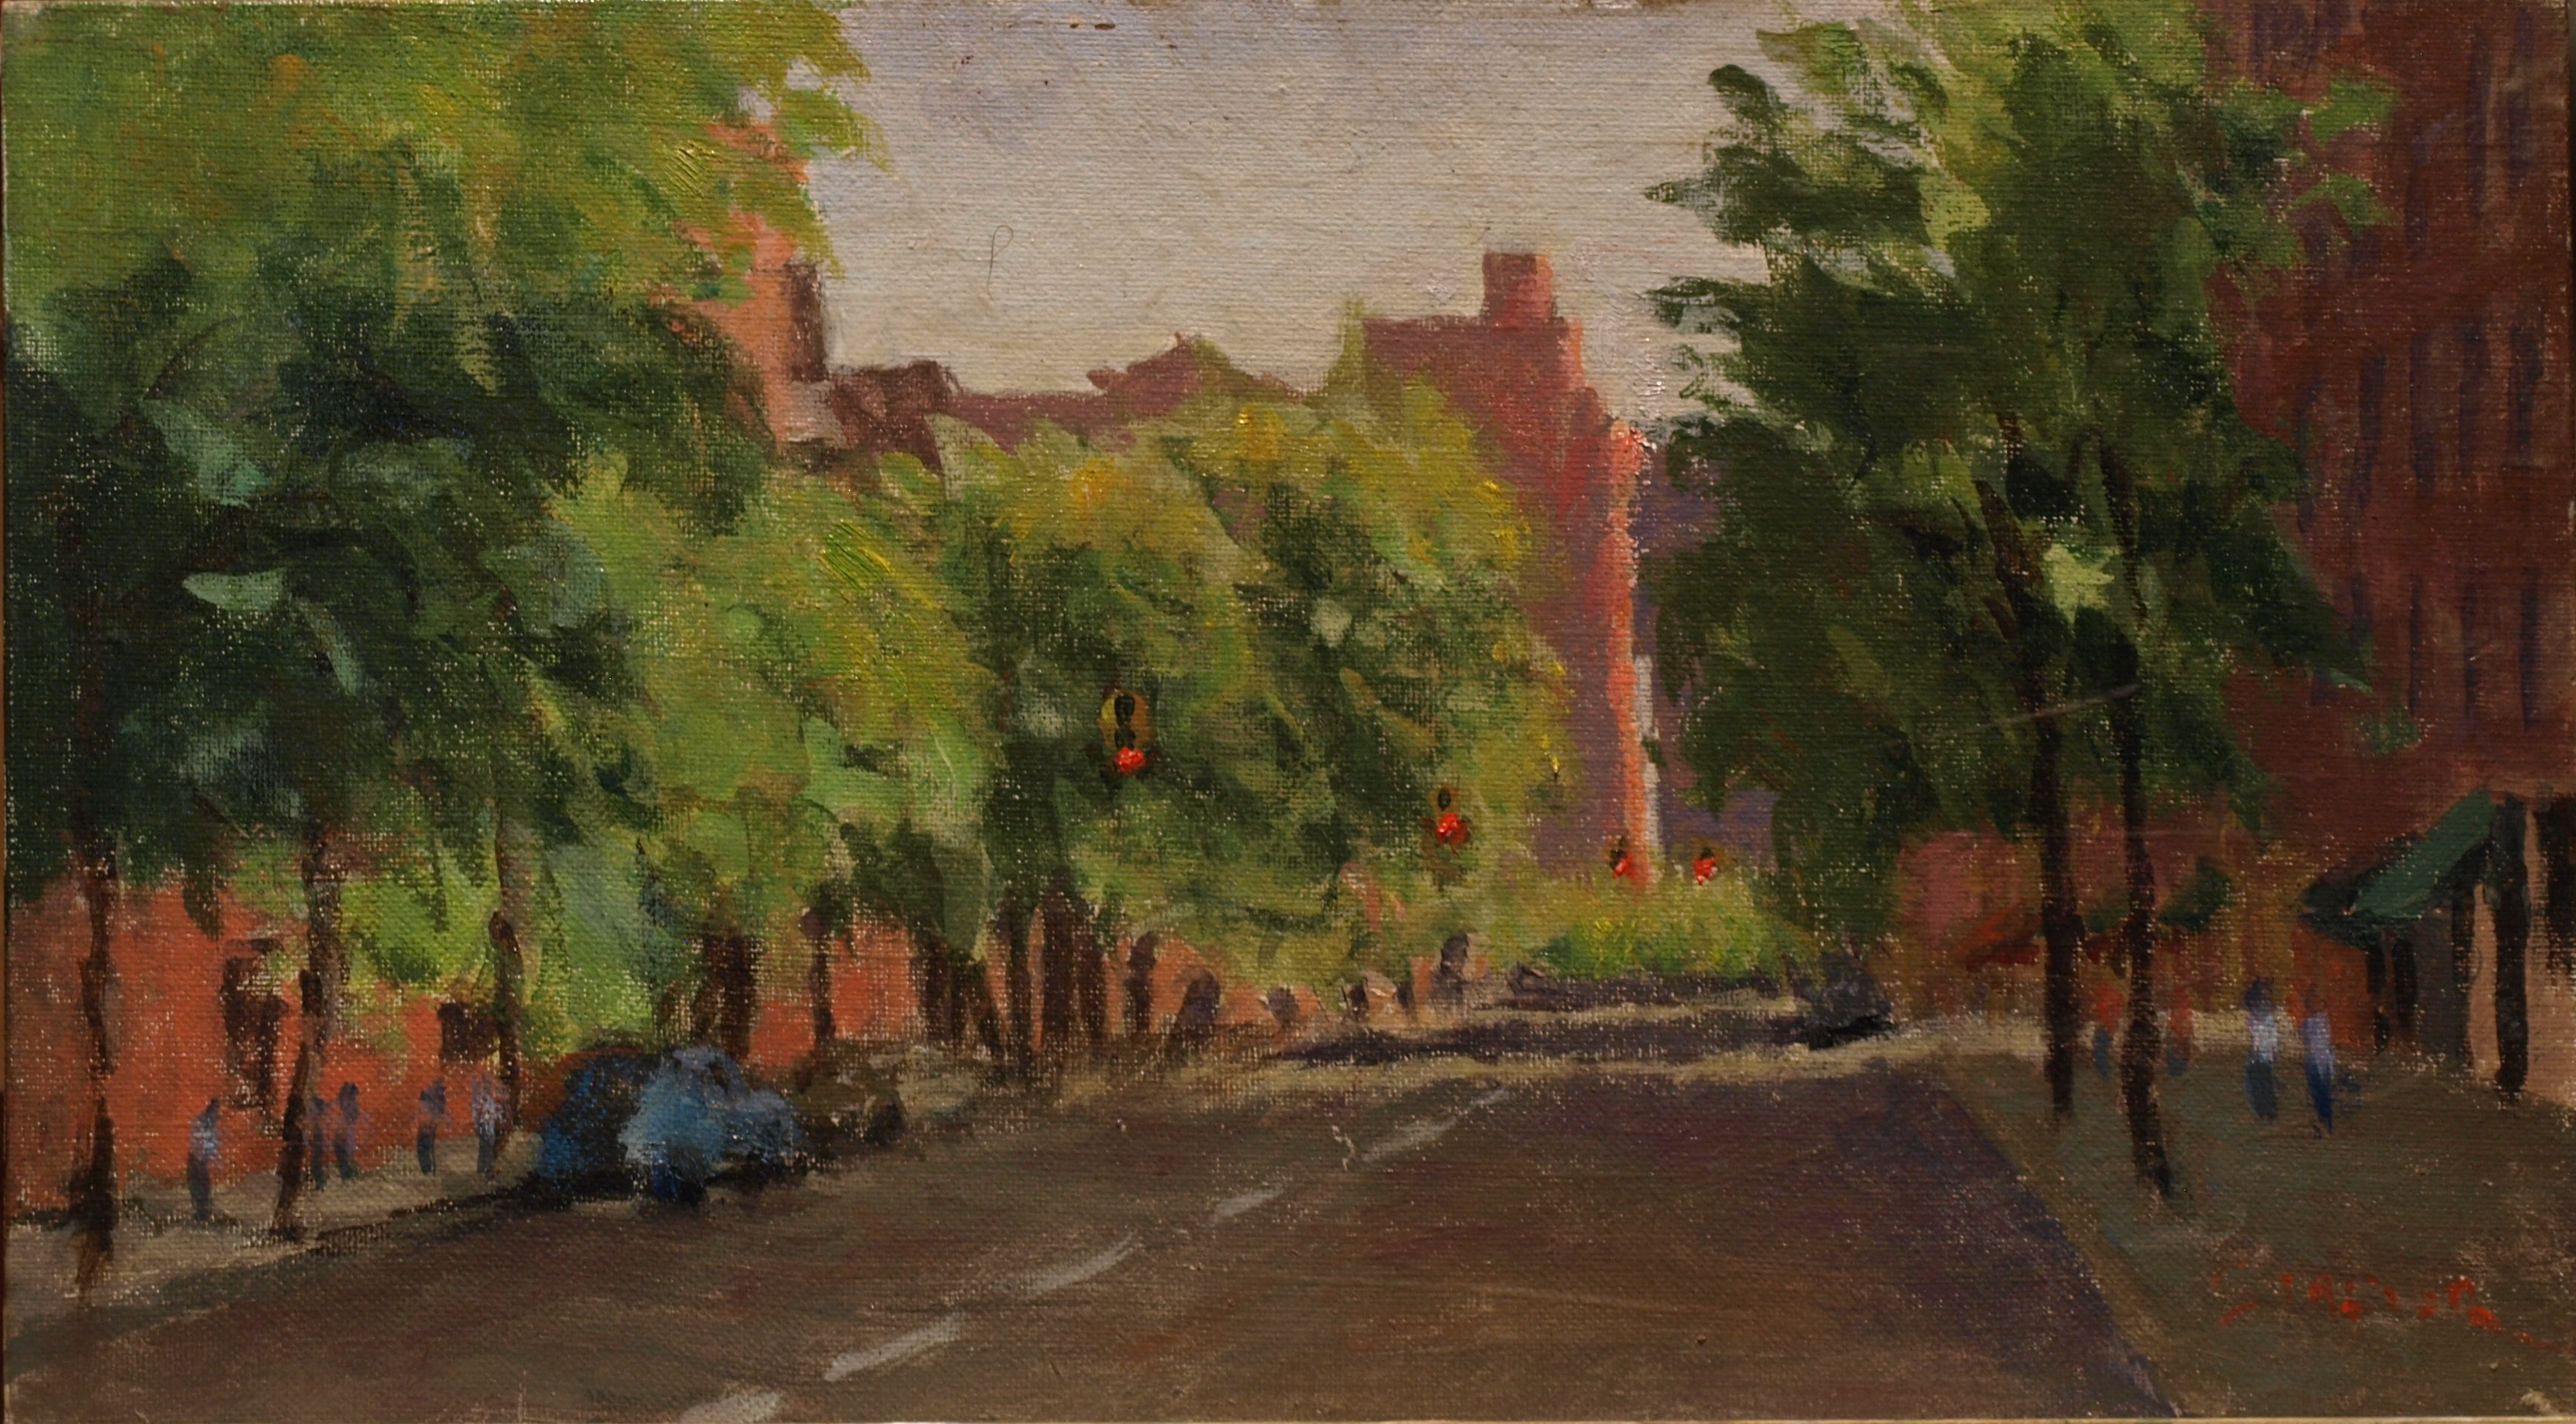 Hudson Street, Oil on Canvas on Panel, 8 x 14 Inches, by Richard Stalter, $220